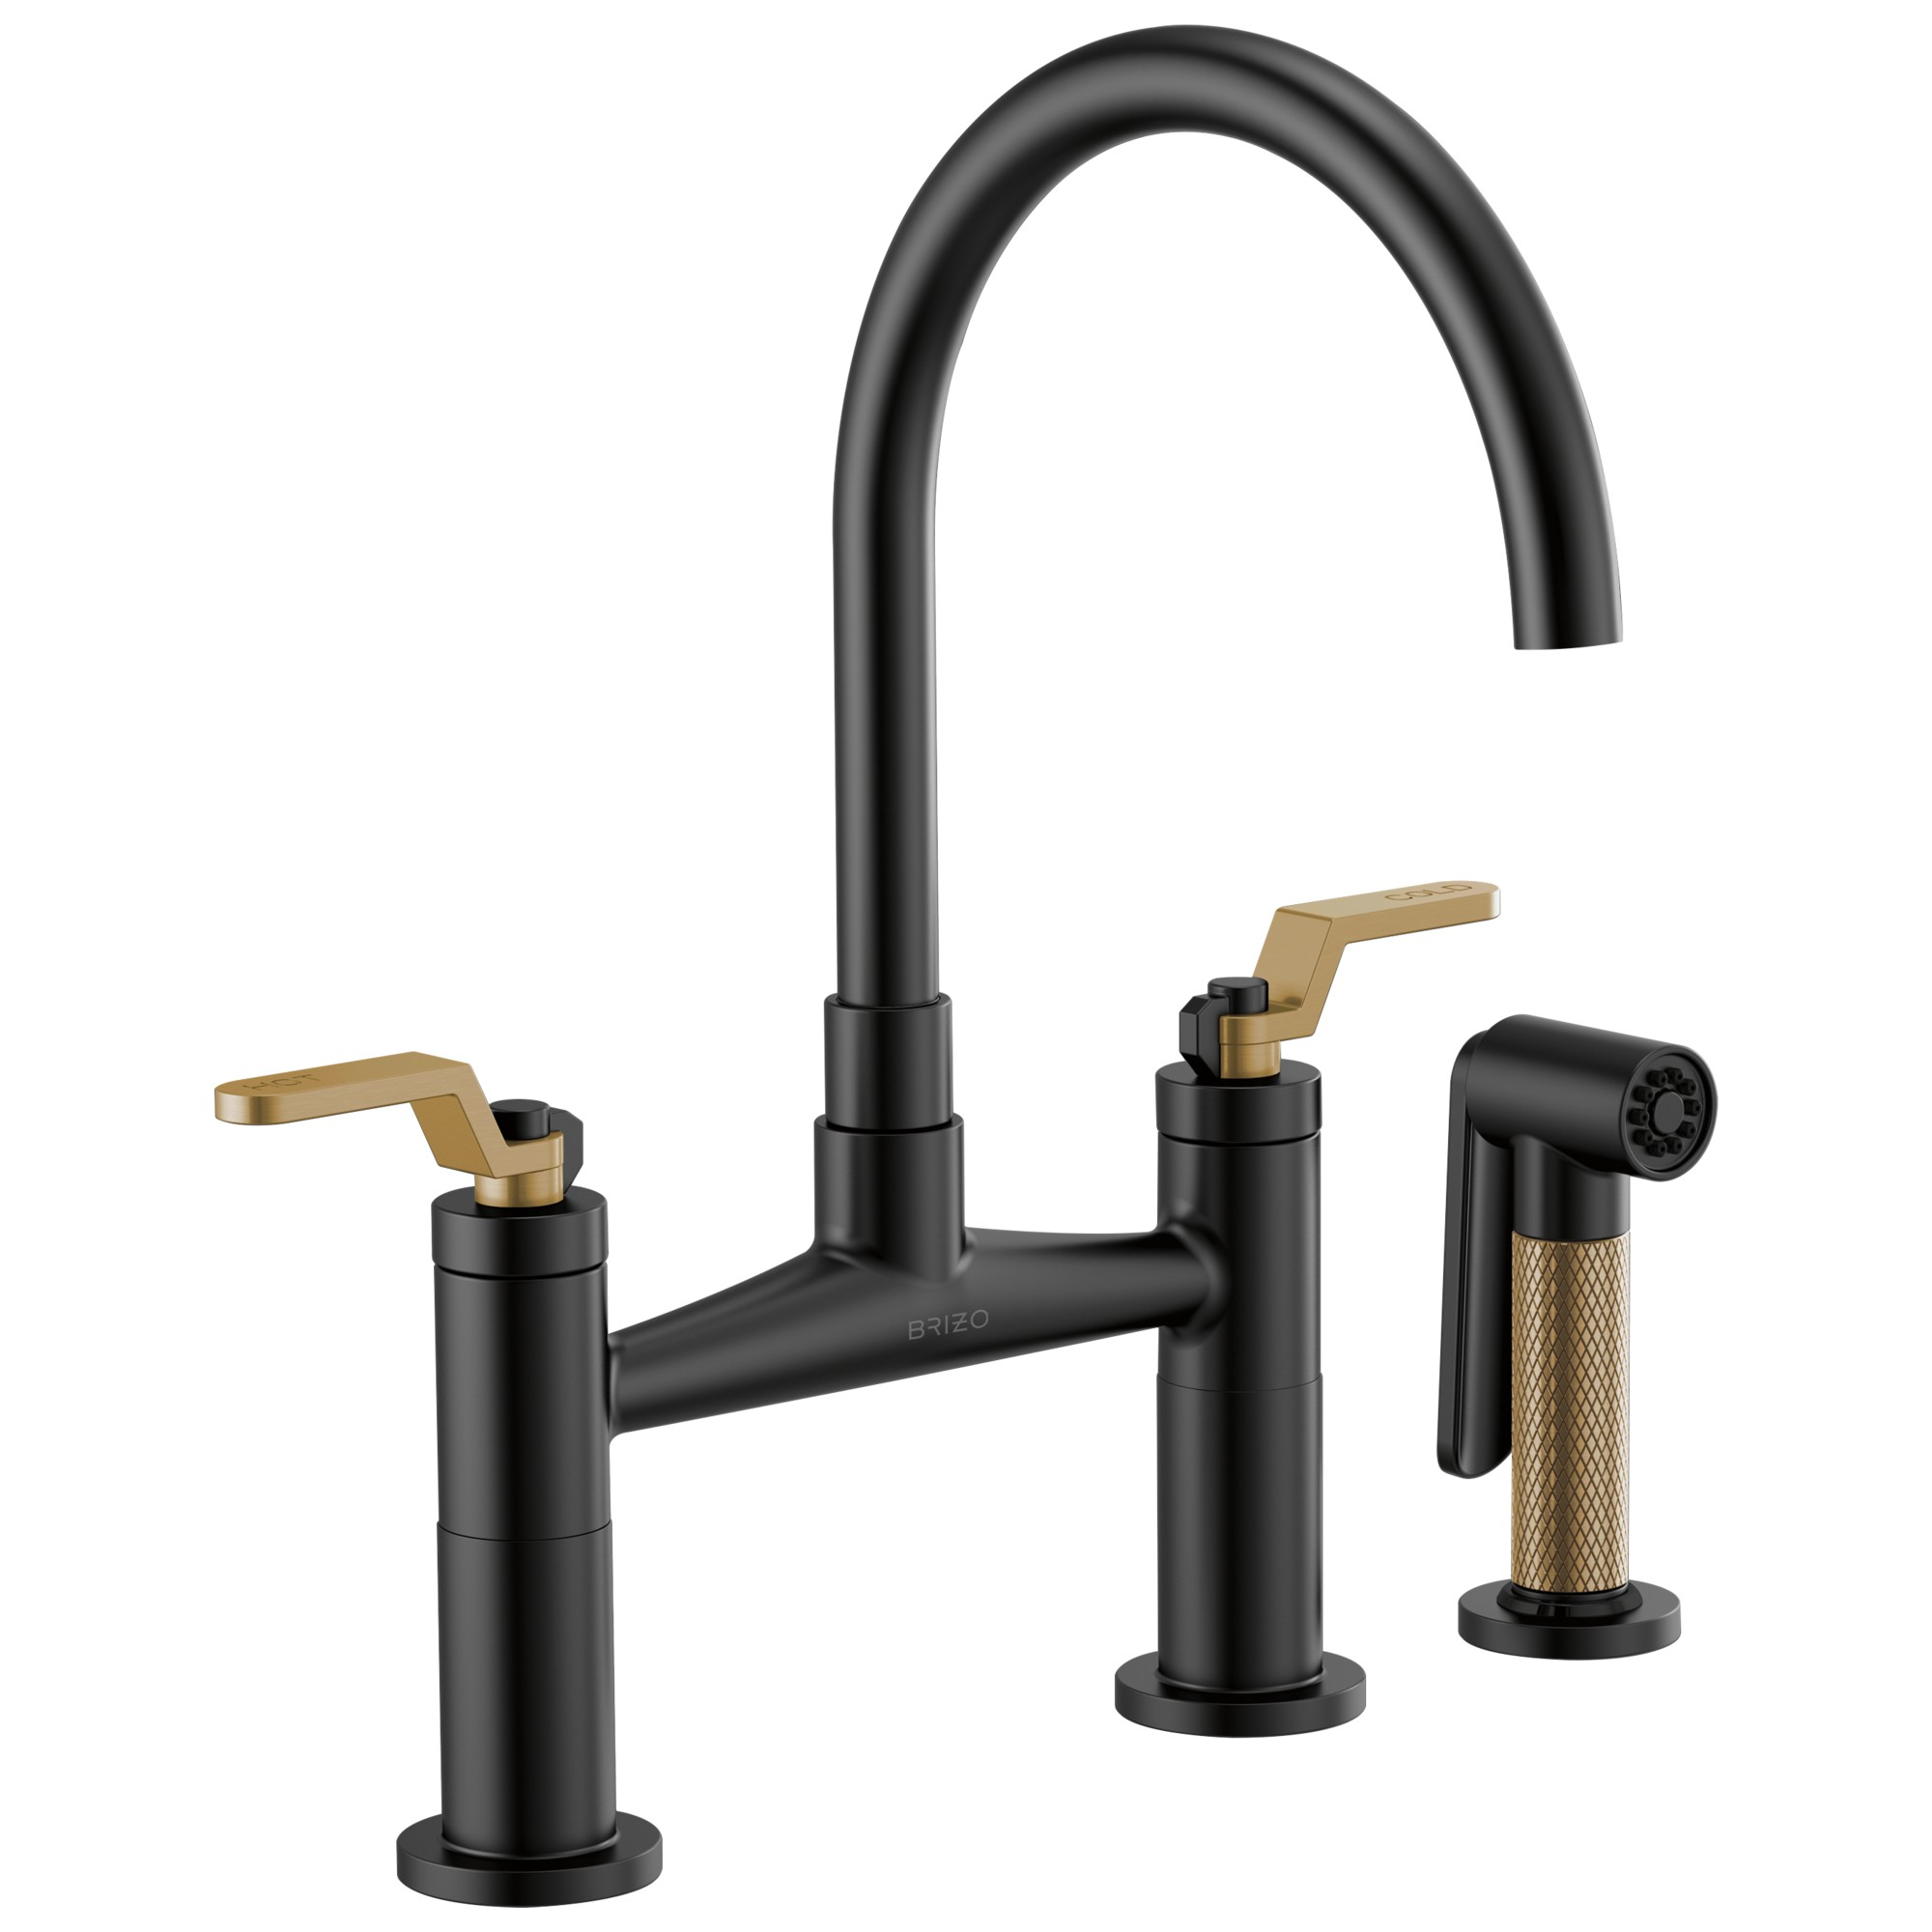 Brizo 62544LF-BLGL Litze Bridge Faucet with Arc Spout and Industrial Handle - Matte Black / Luxe Gold